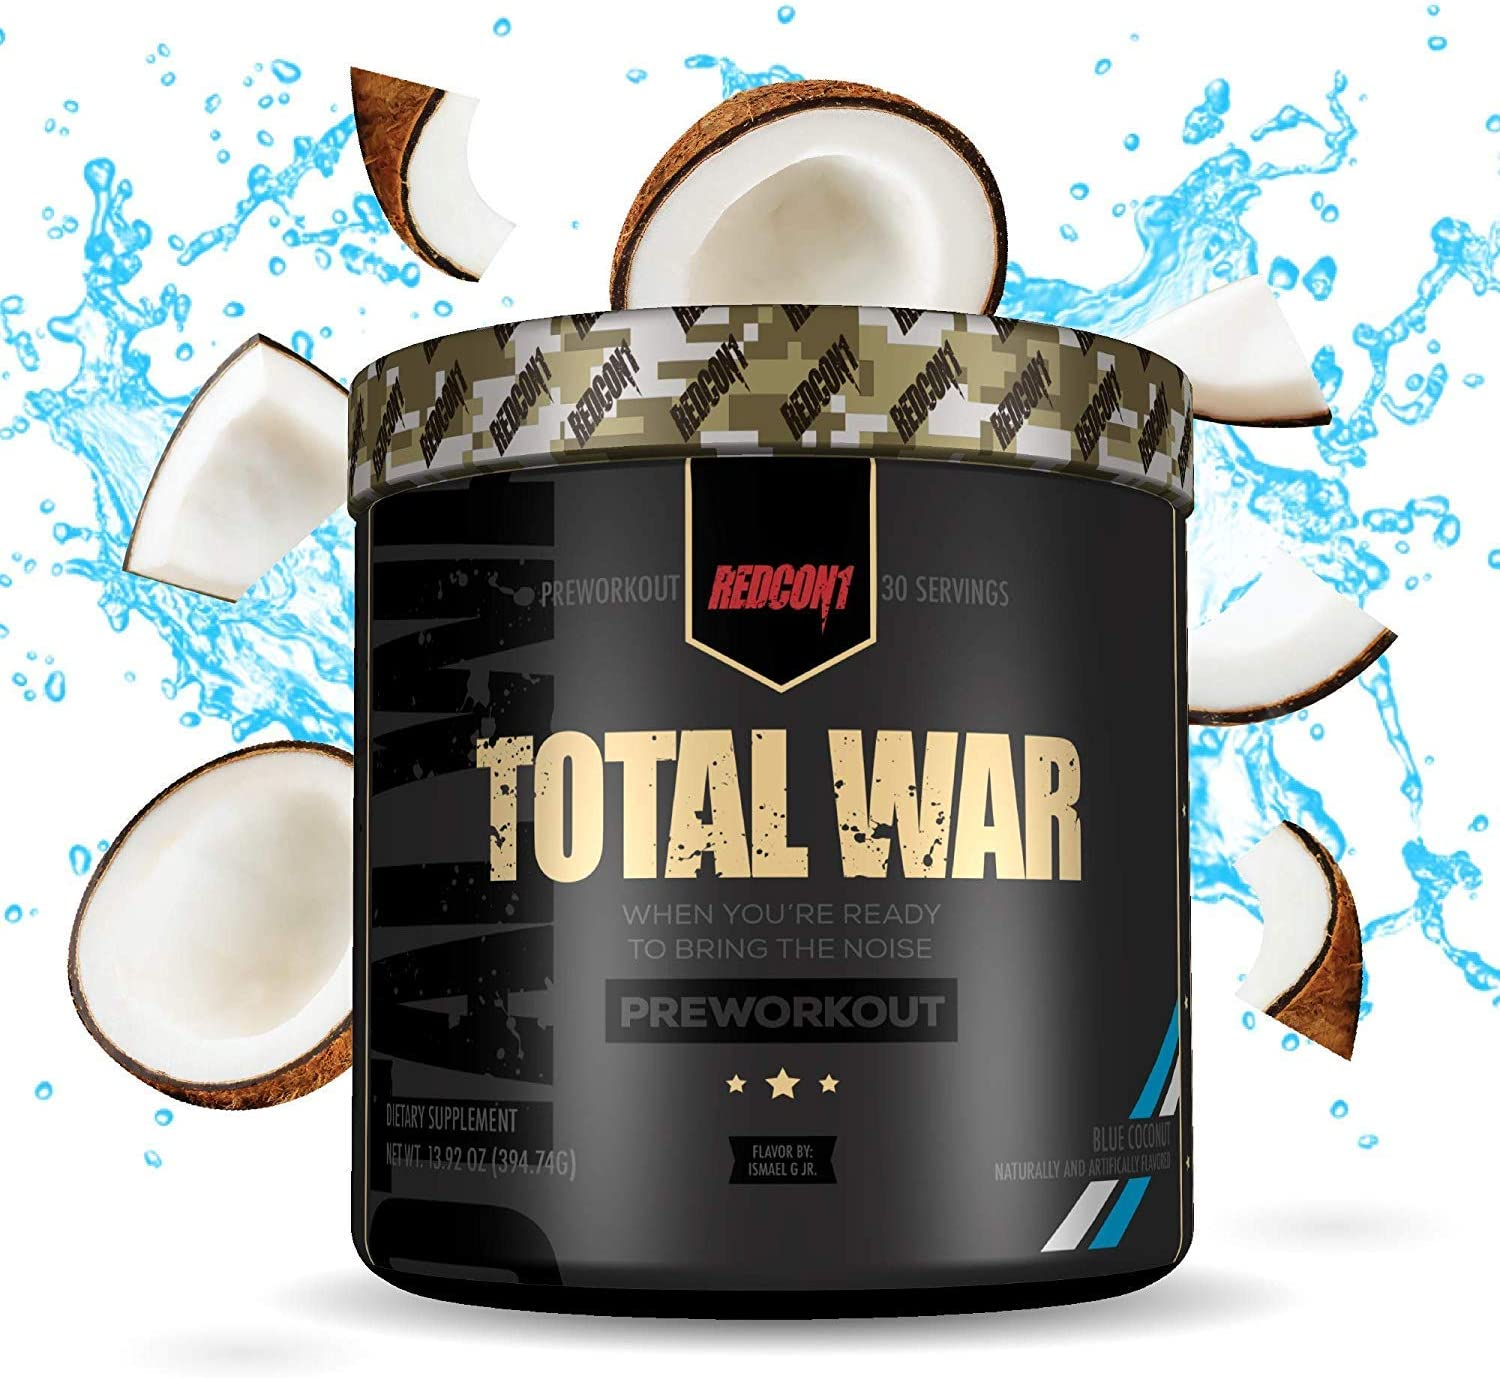 Redcon1 Total War - Pre Workout, 30 Servings, Boost Energy, Increase Endurance and Focus, Beta-Alanine, Caffeine (Blue Coconut)